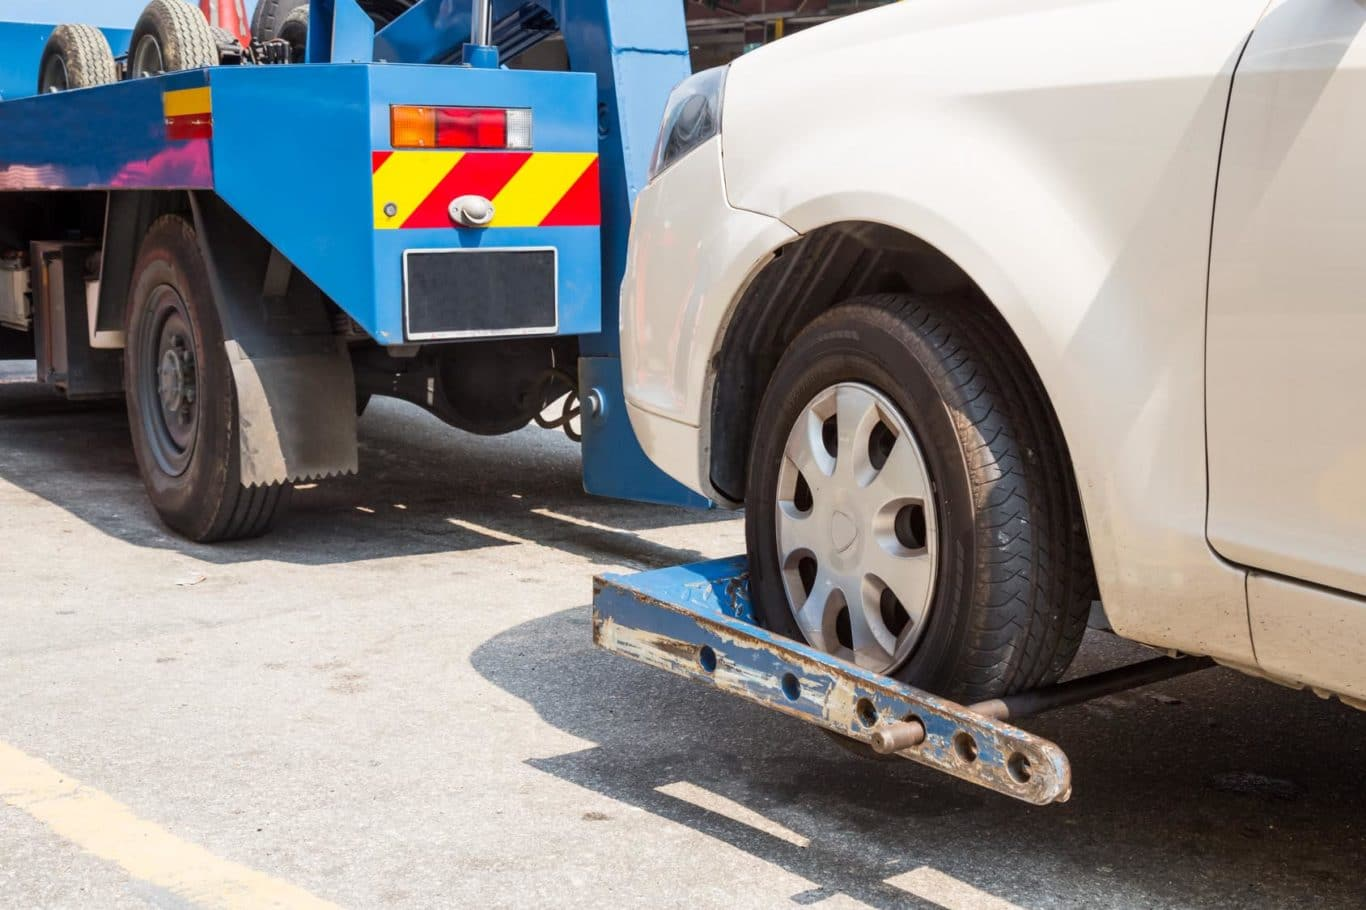 Ballybrack expert Towing services